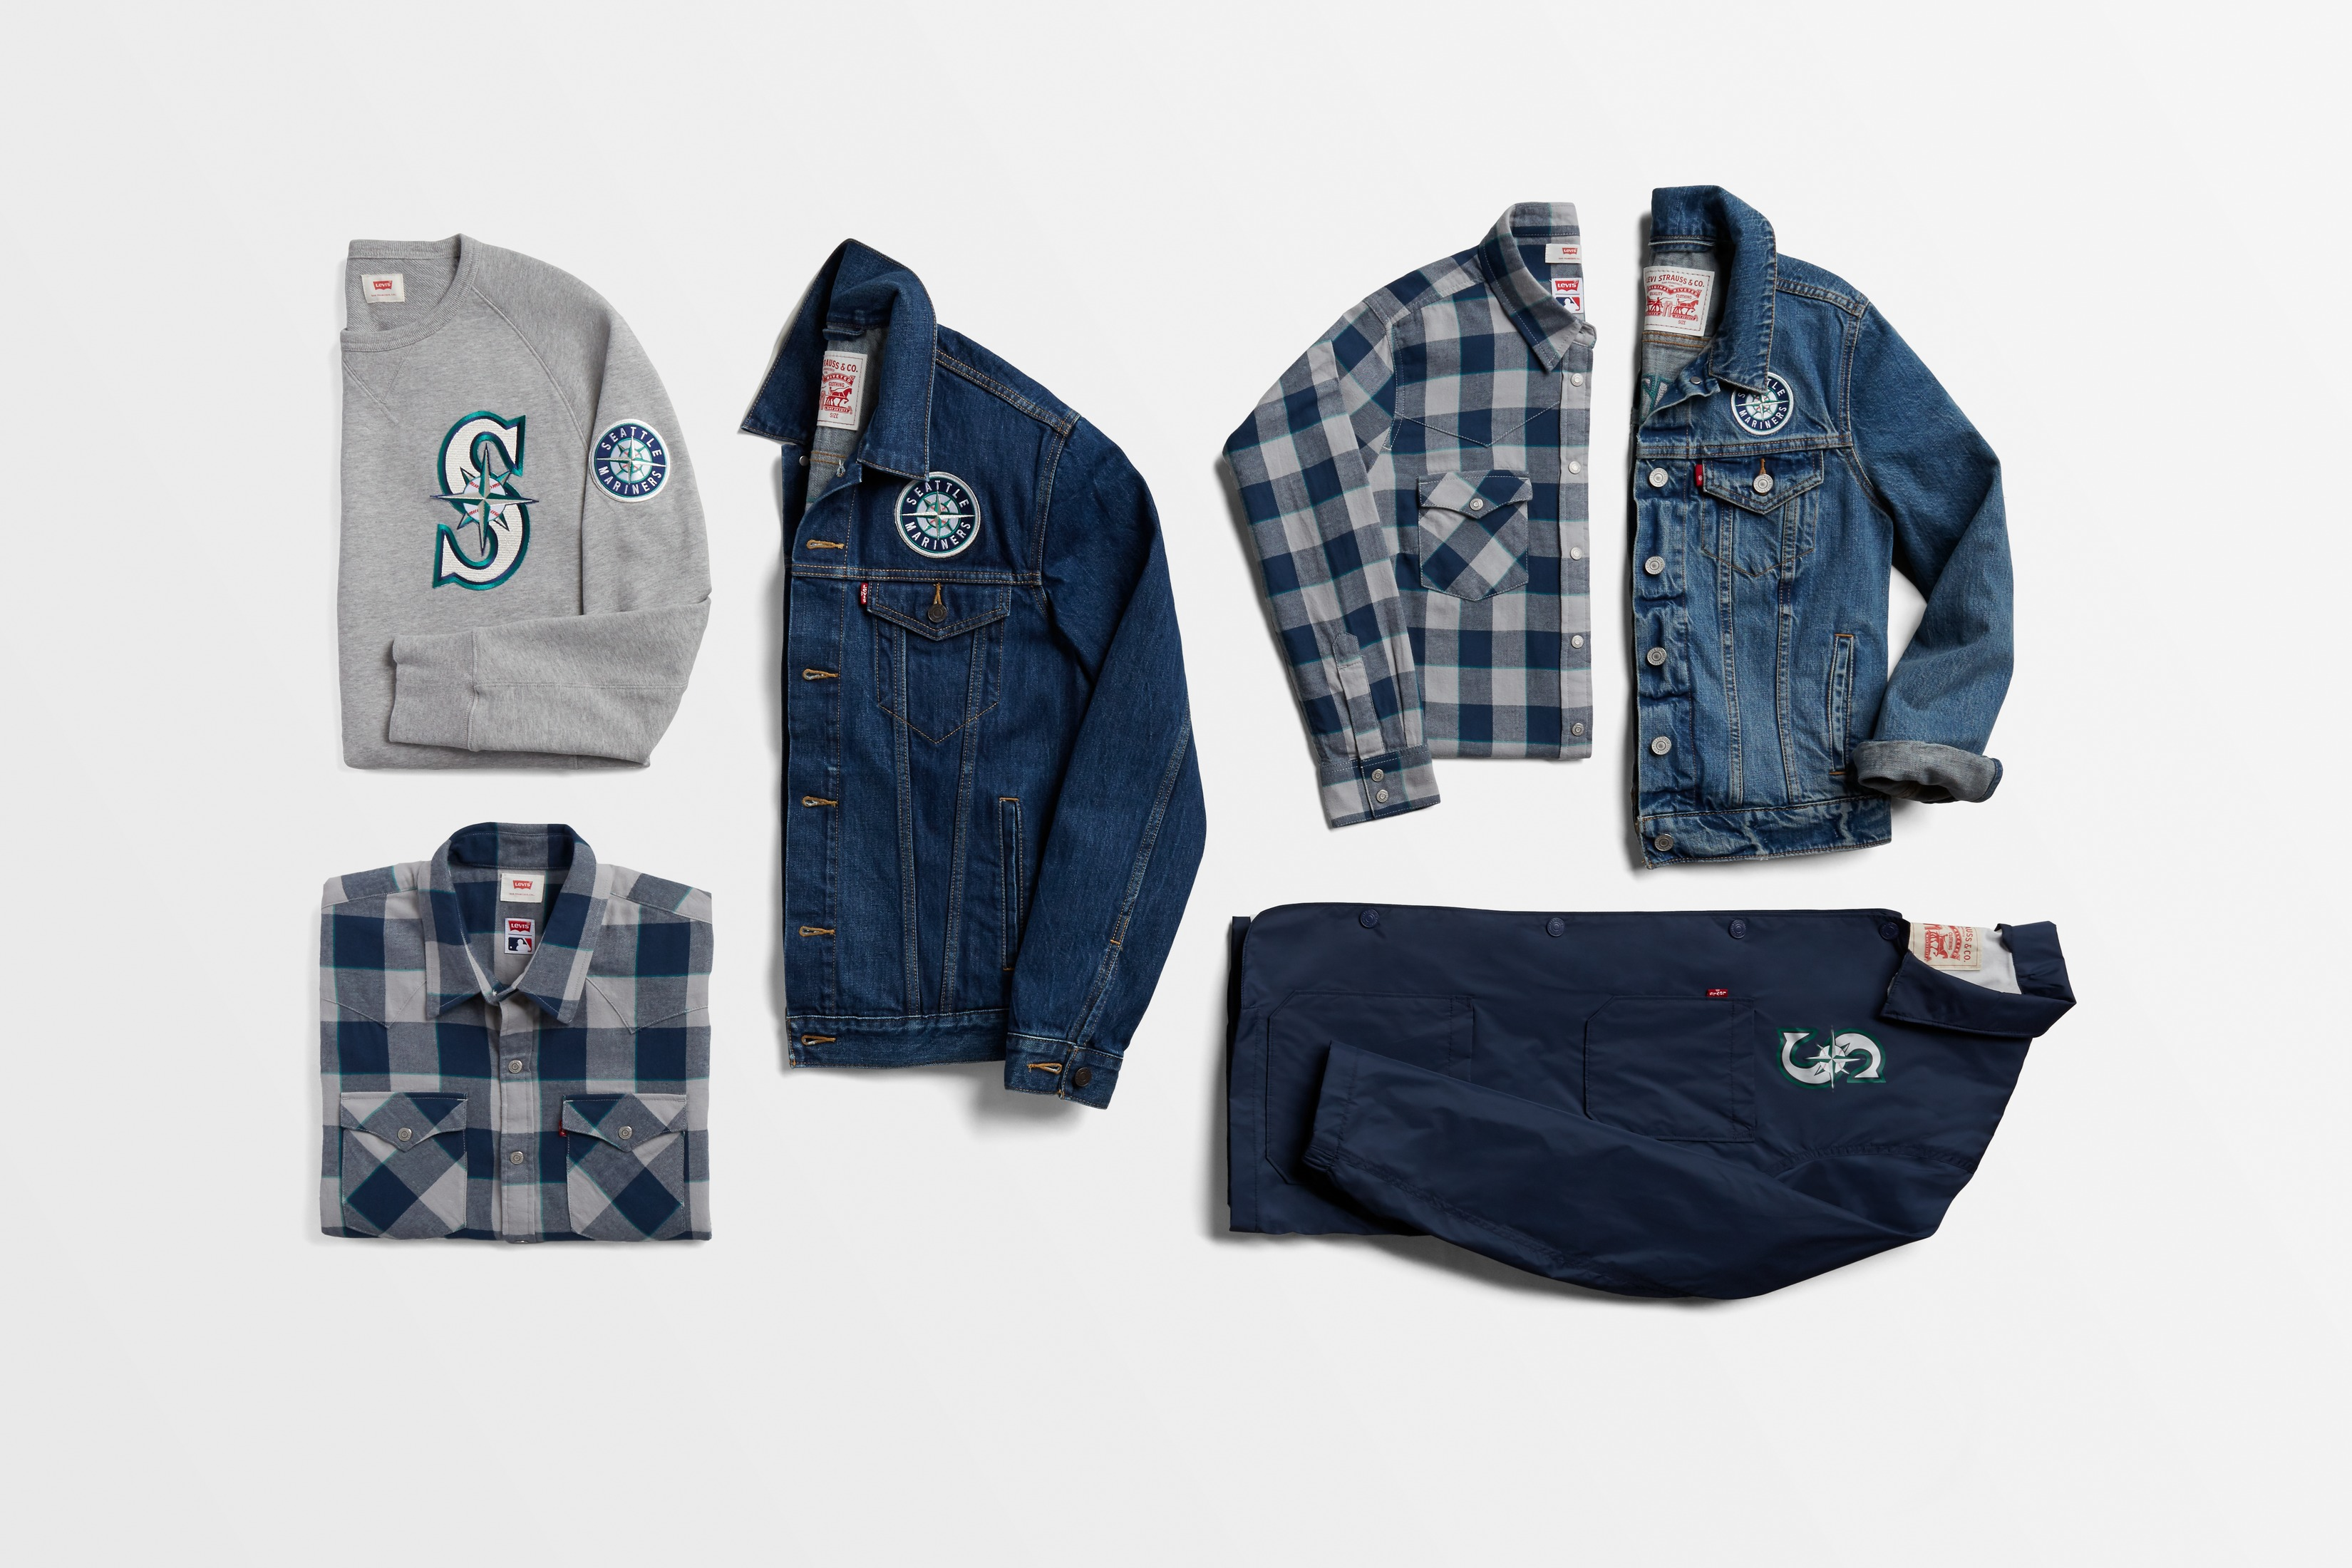 Just in time for baseball season, the new Levi's MLB Collection just announced that they are including Mariner's fan apparel! The Levi's MLB Collection is available for both men and women, and offers fans four different styles including the iconic denim Trucker, the Western plaid shirt, a crewneck sweatshirt, and vintage inspired Club Coat. The collection is available starting today, Friday March 31, on Levi.com. Get to gettin' and you'll probably be the most stylish fan at the Mariner's games. (Image courtesy of Levi's).